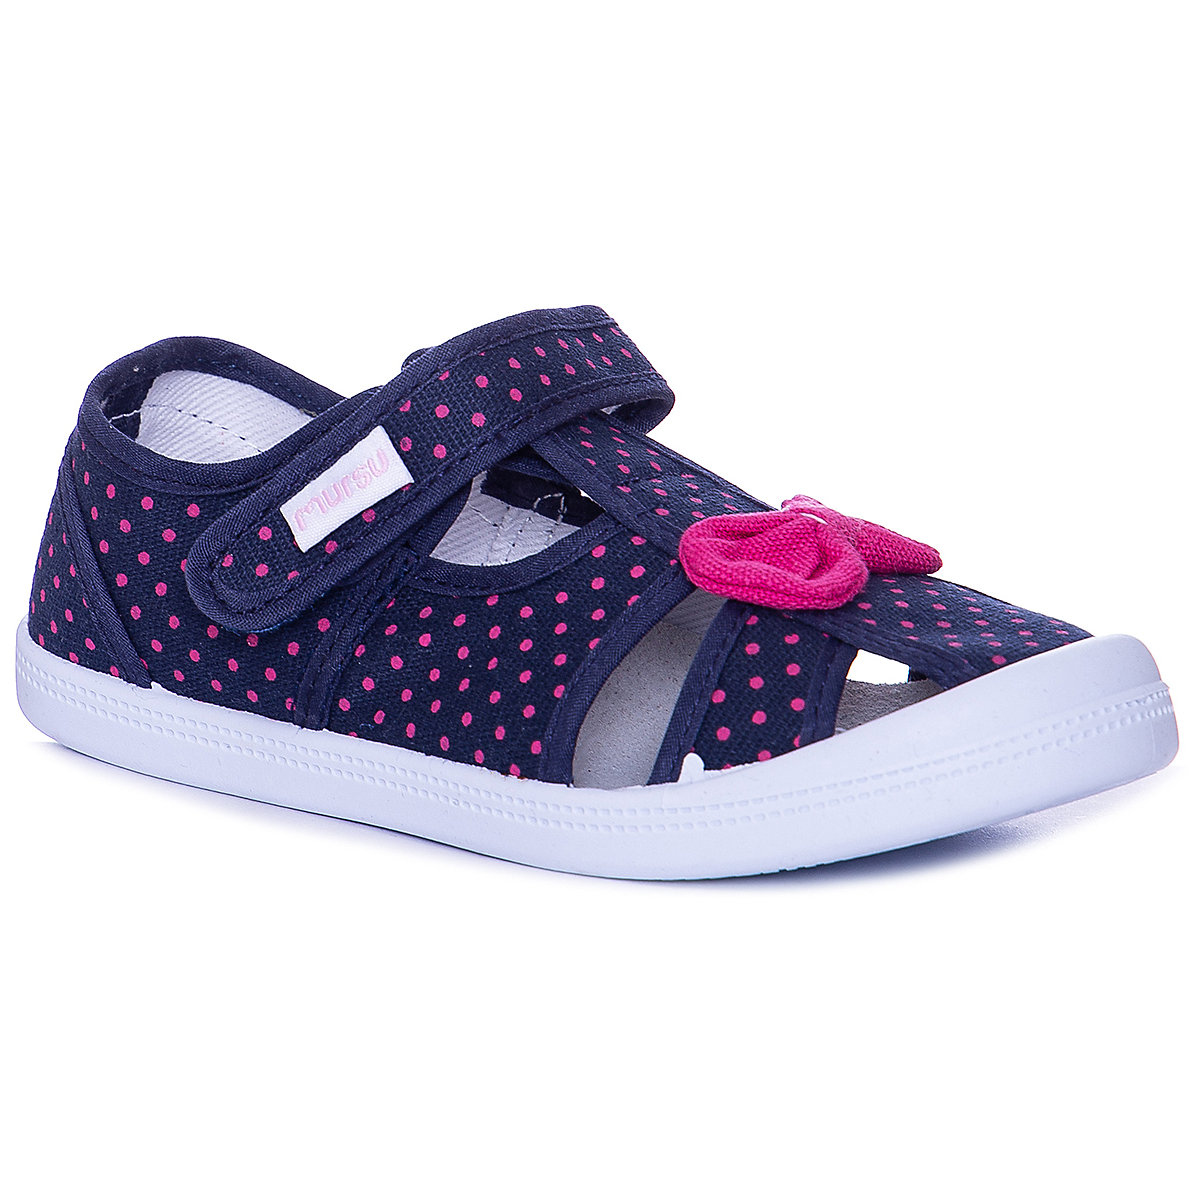 MURSU Sandals 10611954 children's shoes comfortable and light girls and boys sandals adidas af3921 sports and entertainment for boys